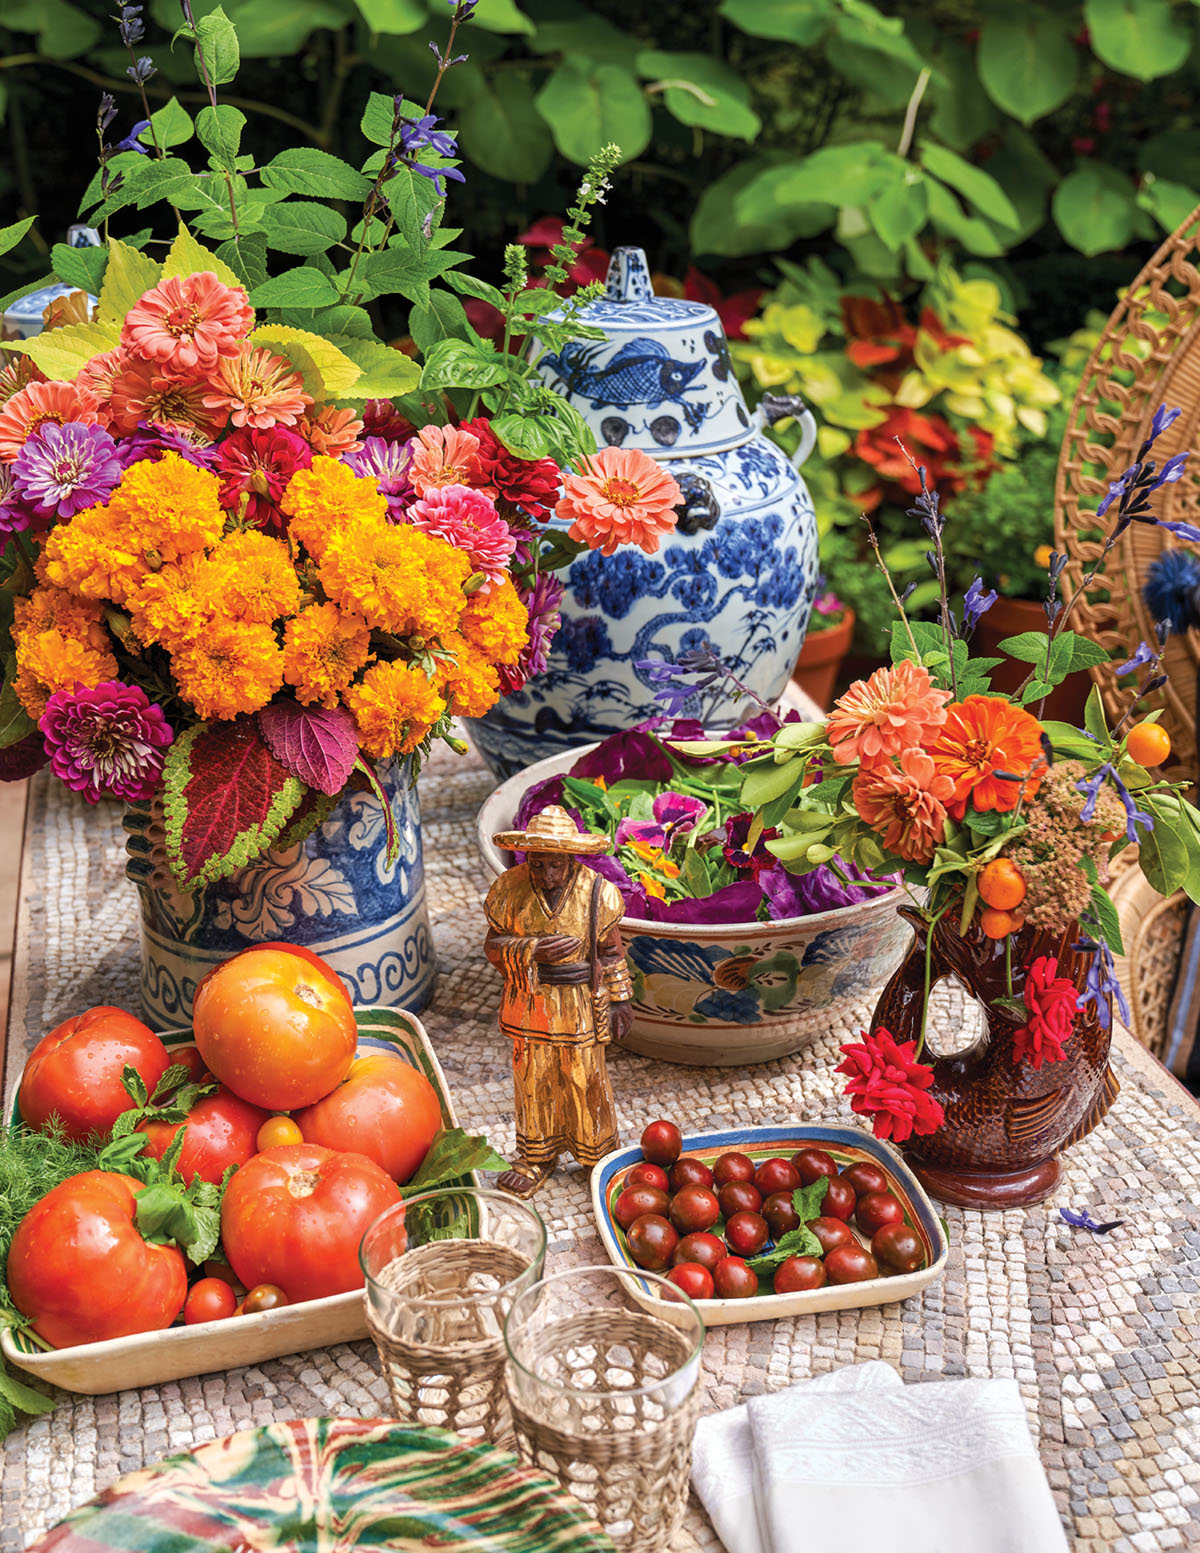 A blue-and-white ginger jar, a large salad, shallow bowls of summer tomatoes, and a pair of lush red and orange floral arrangement fill a mosaic patio table